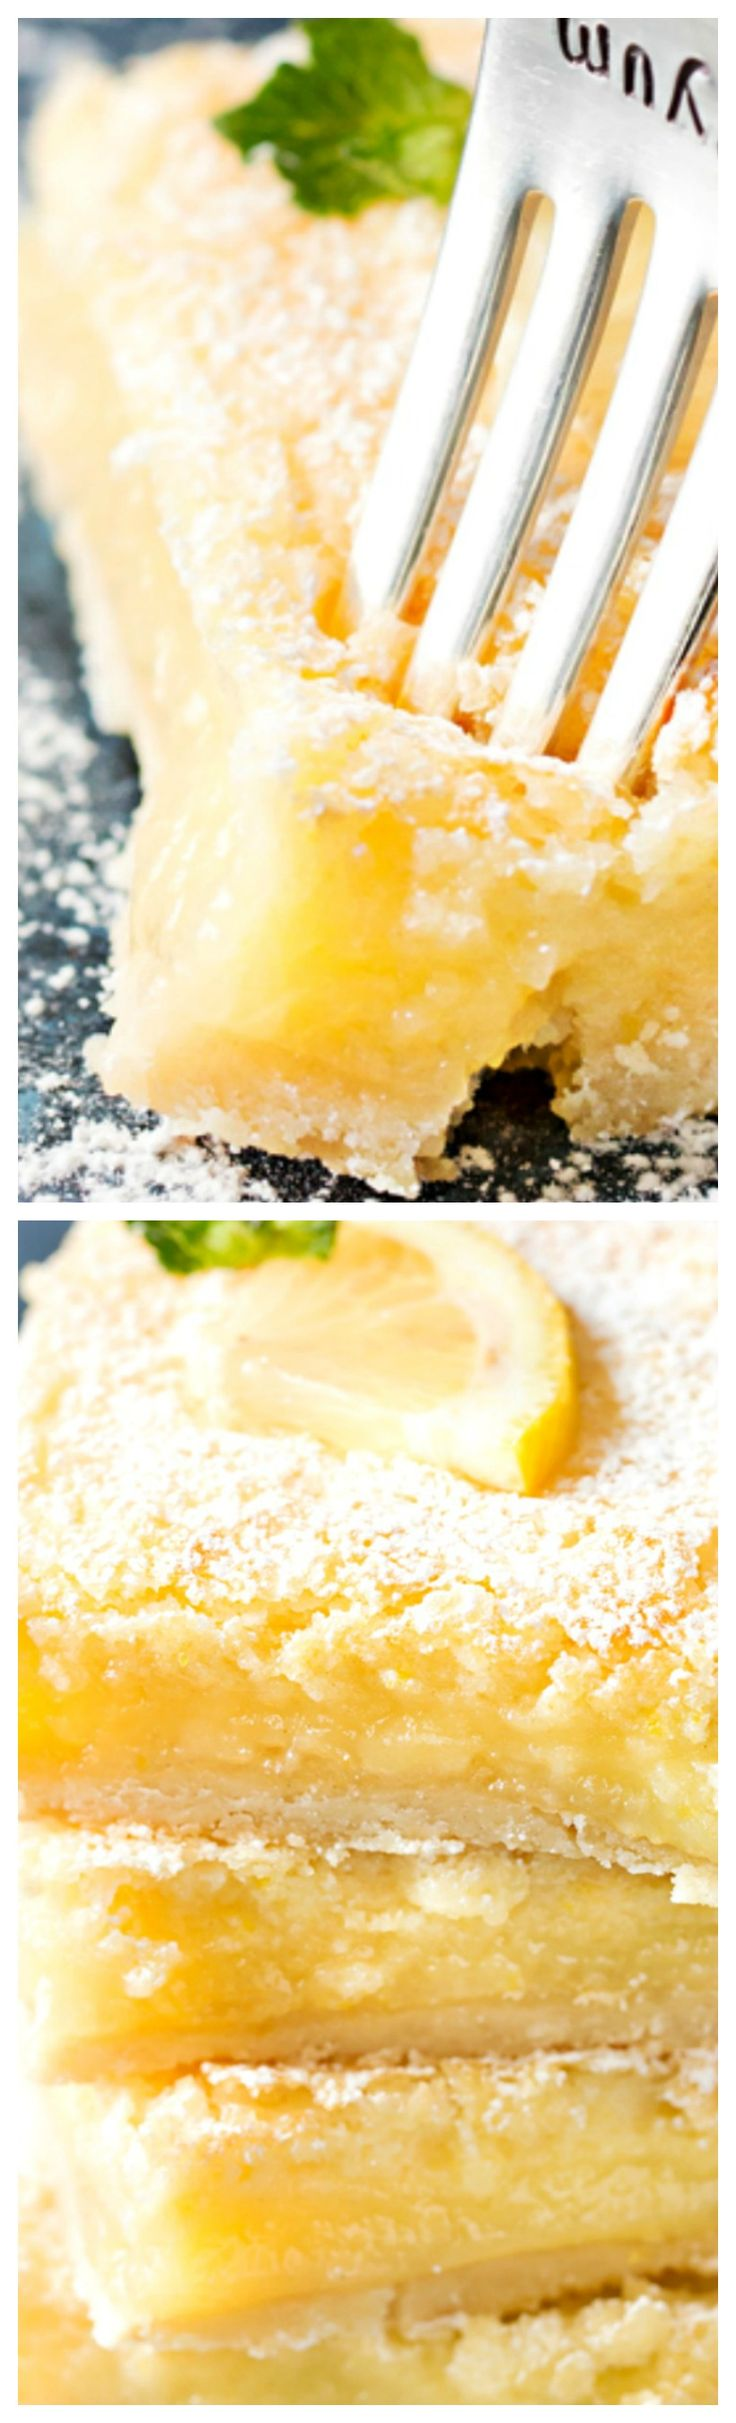 Best Buttermilk Lemon Squares ~ Made 100% from scratch, they feature a buttery shortbread crust, thick, creamy, lemon filling, and are easy for anyone to make!